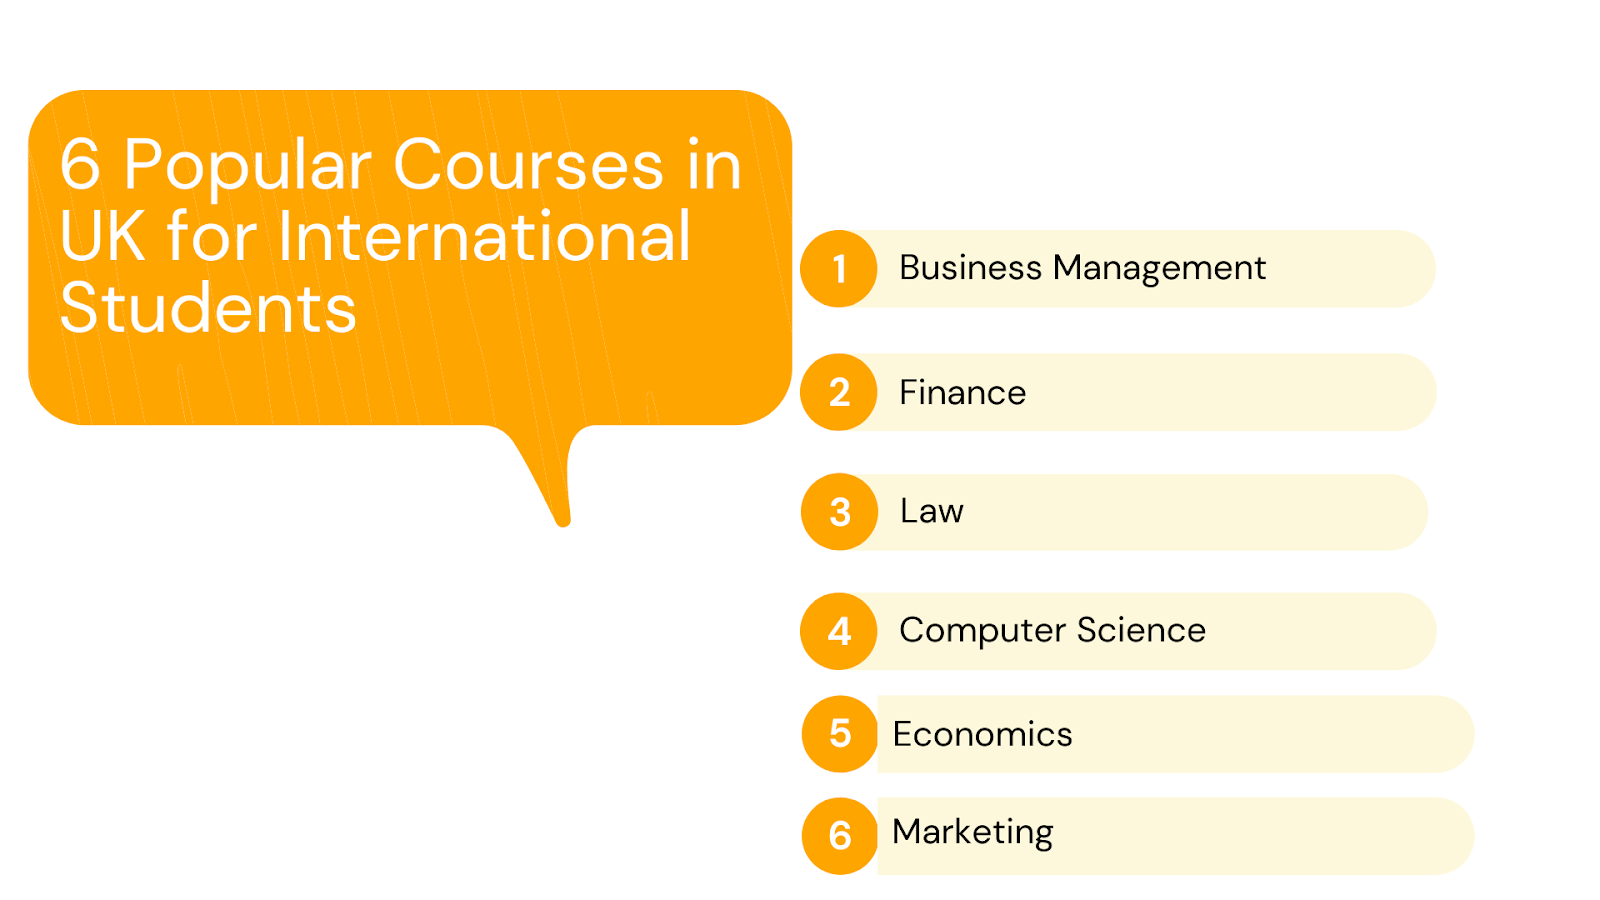 Popular Courses in the UK